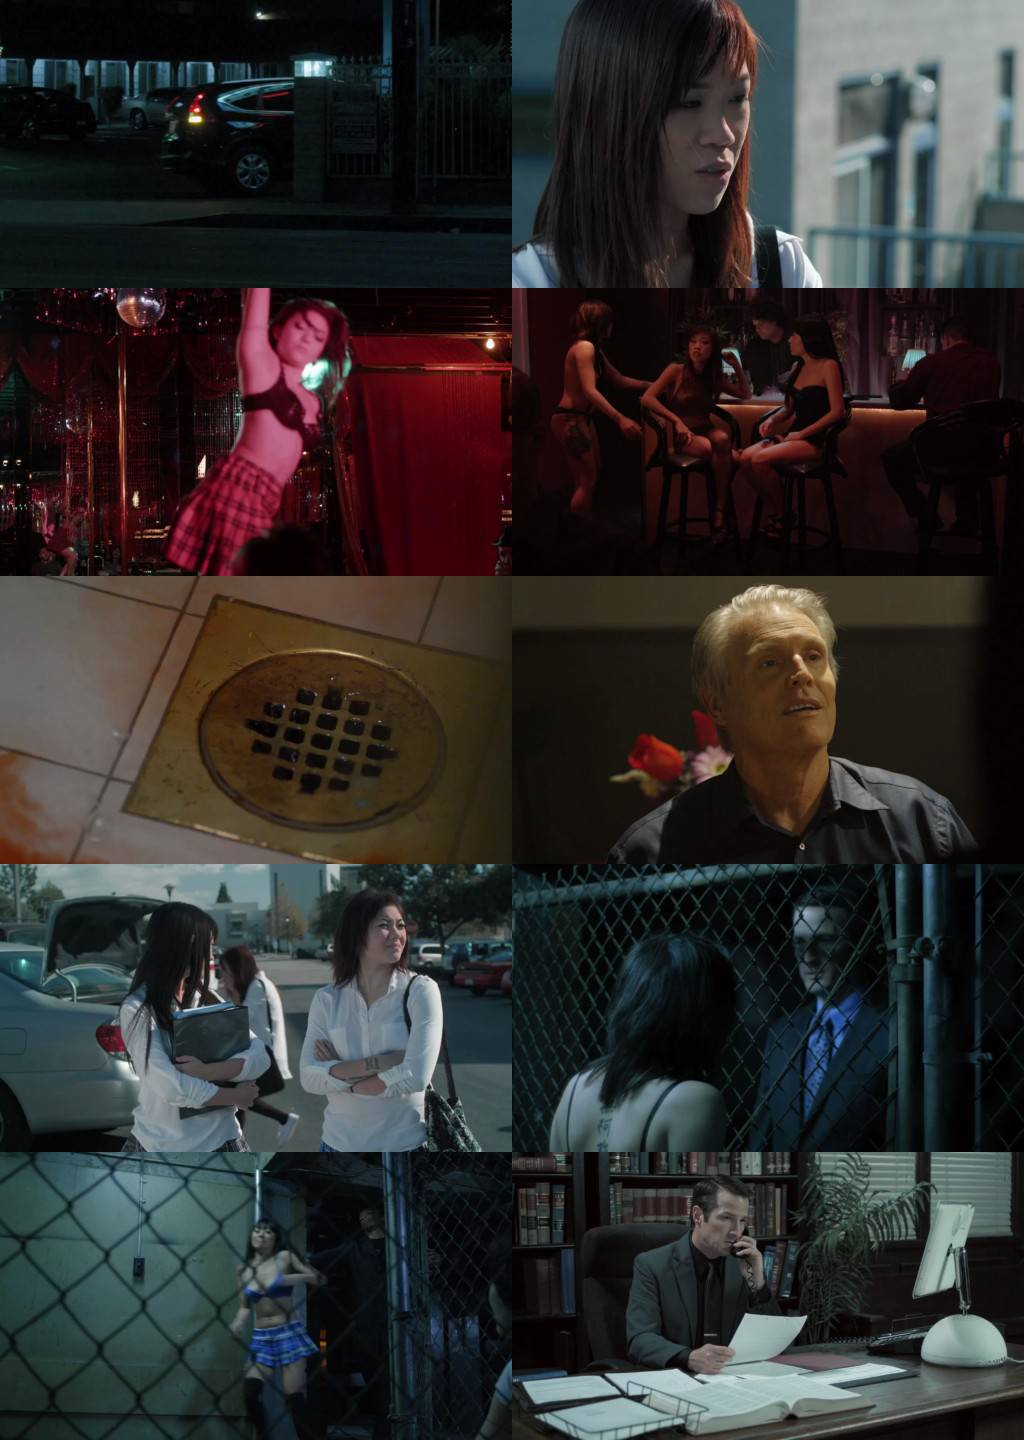 Asian School Girls (2014) 720p BRRip H264 AAC-RARBG